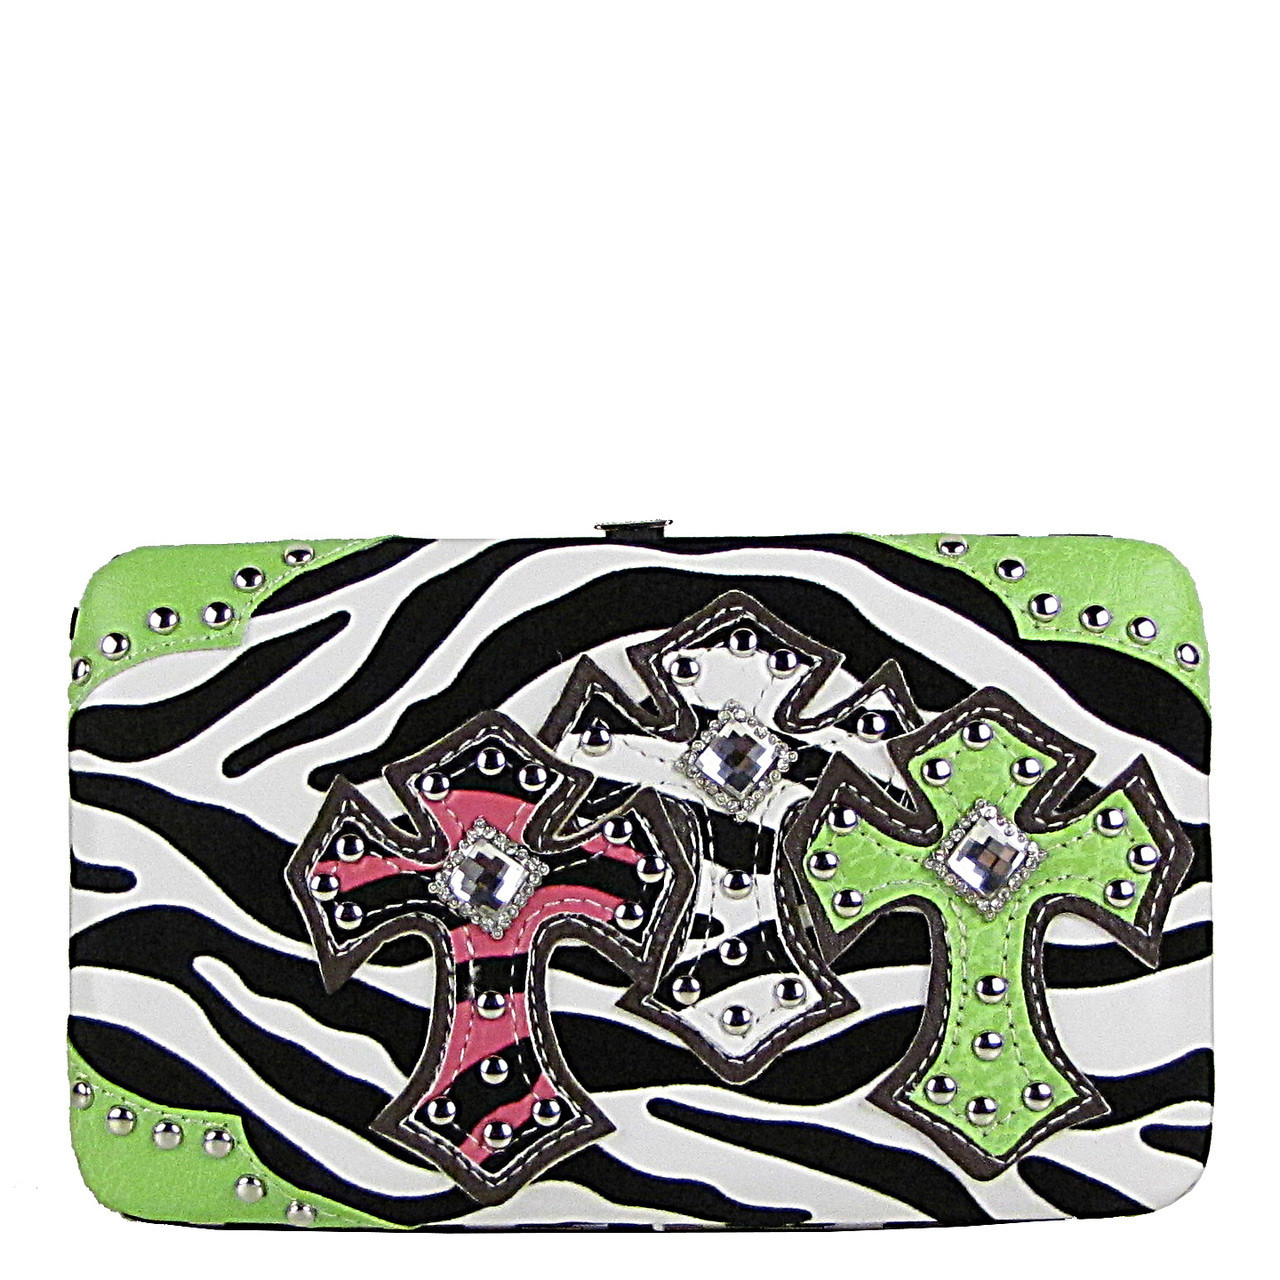 GREEN ZEBRA STONE STUDDED CROSS LOOK FLAT WALLET FW2-04102GRN